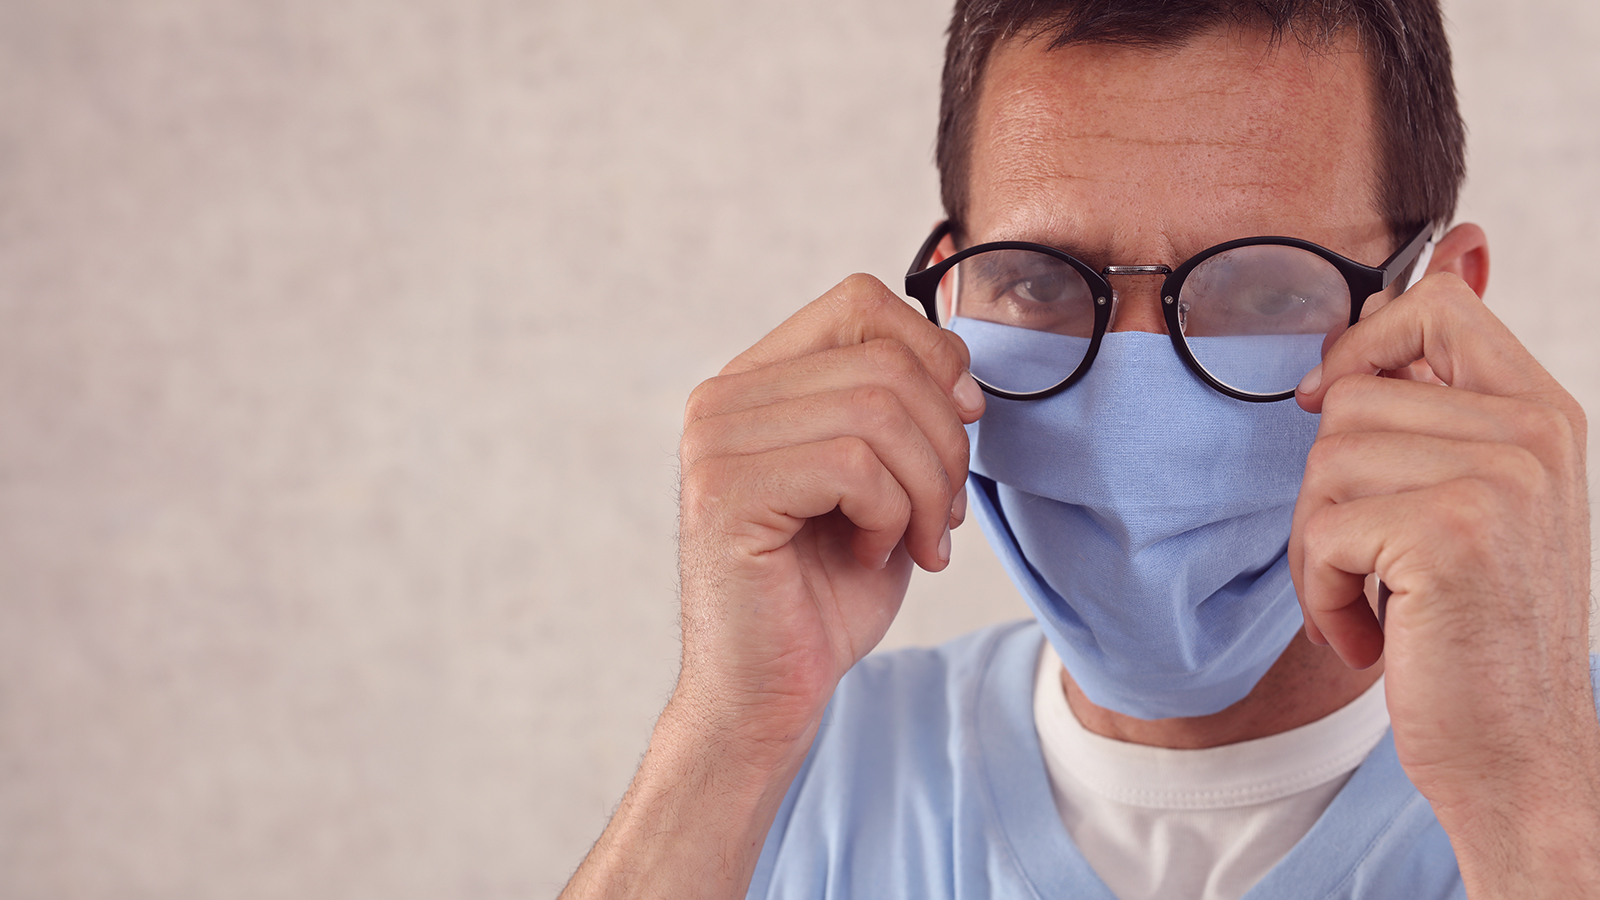 3 ways to keep your glasses from fogging and slipping while wearing a mask